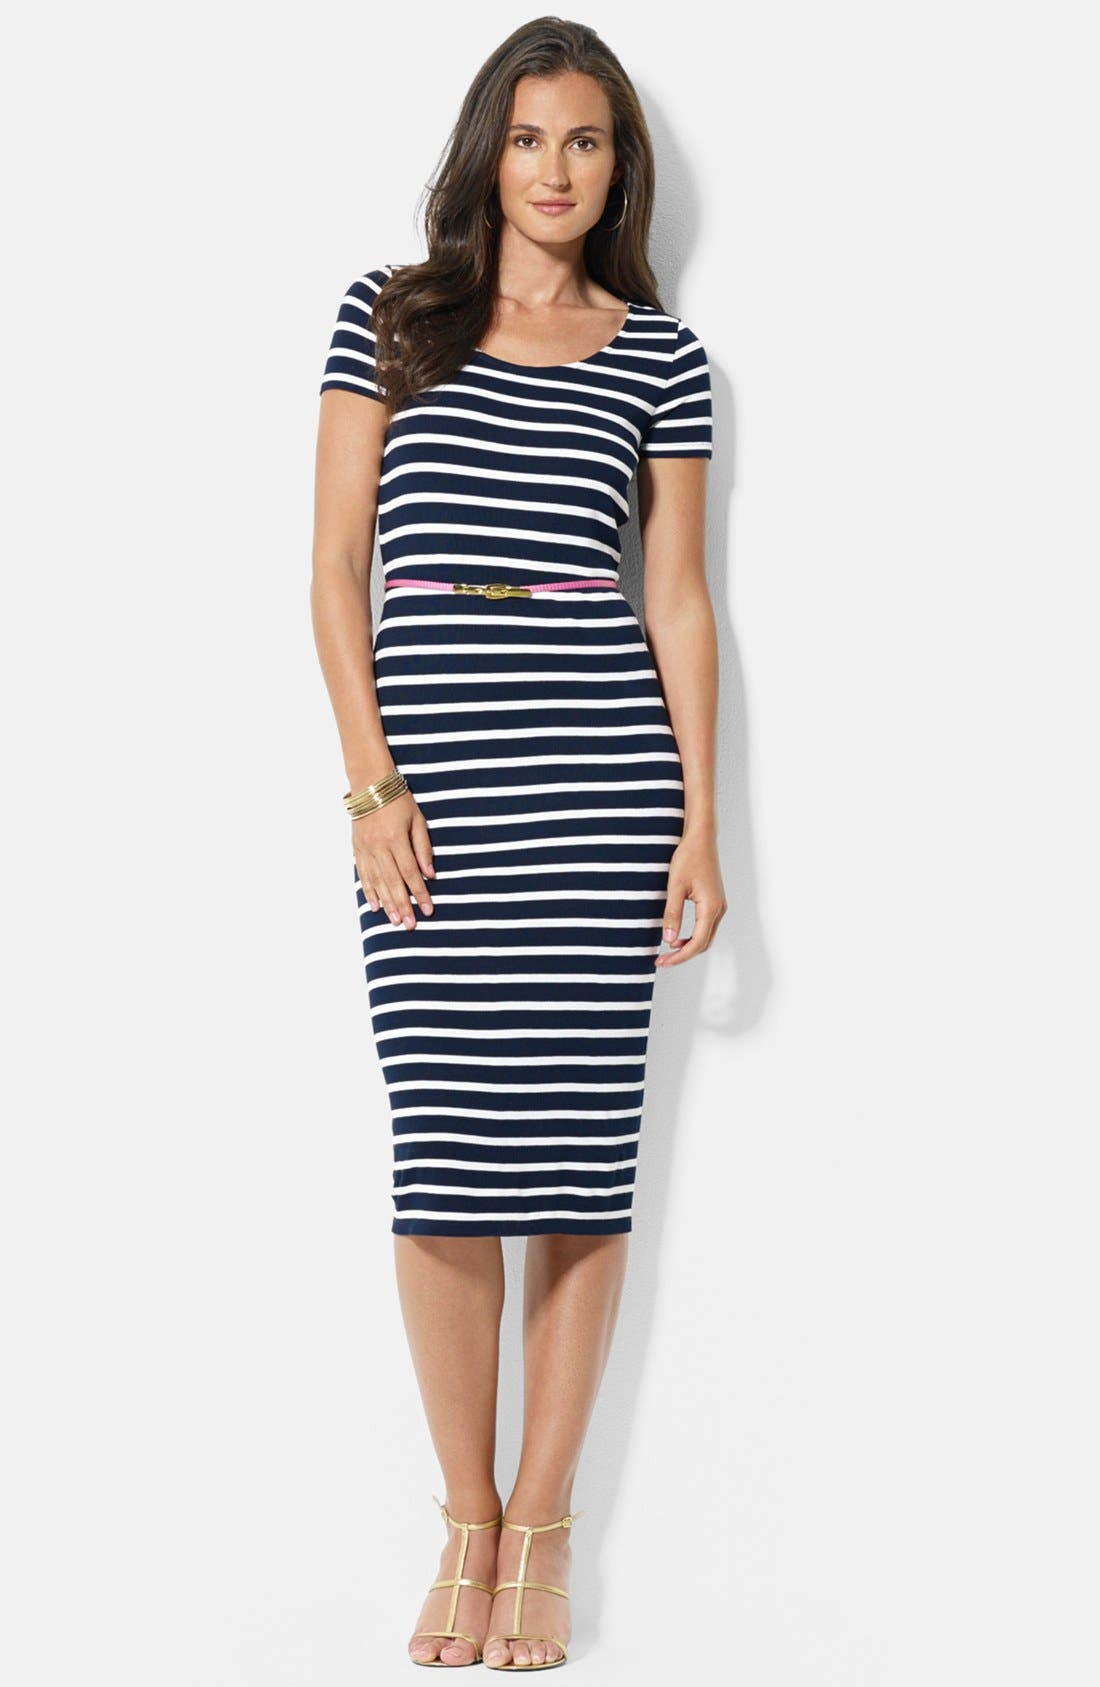 Alternate Image 1 Selected - Lauren Ralph Lauren Stripe Knit Dress (Petite)